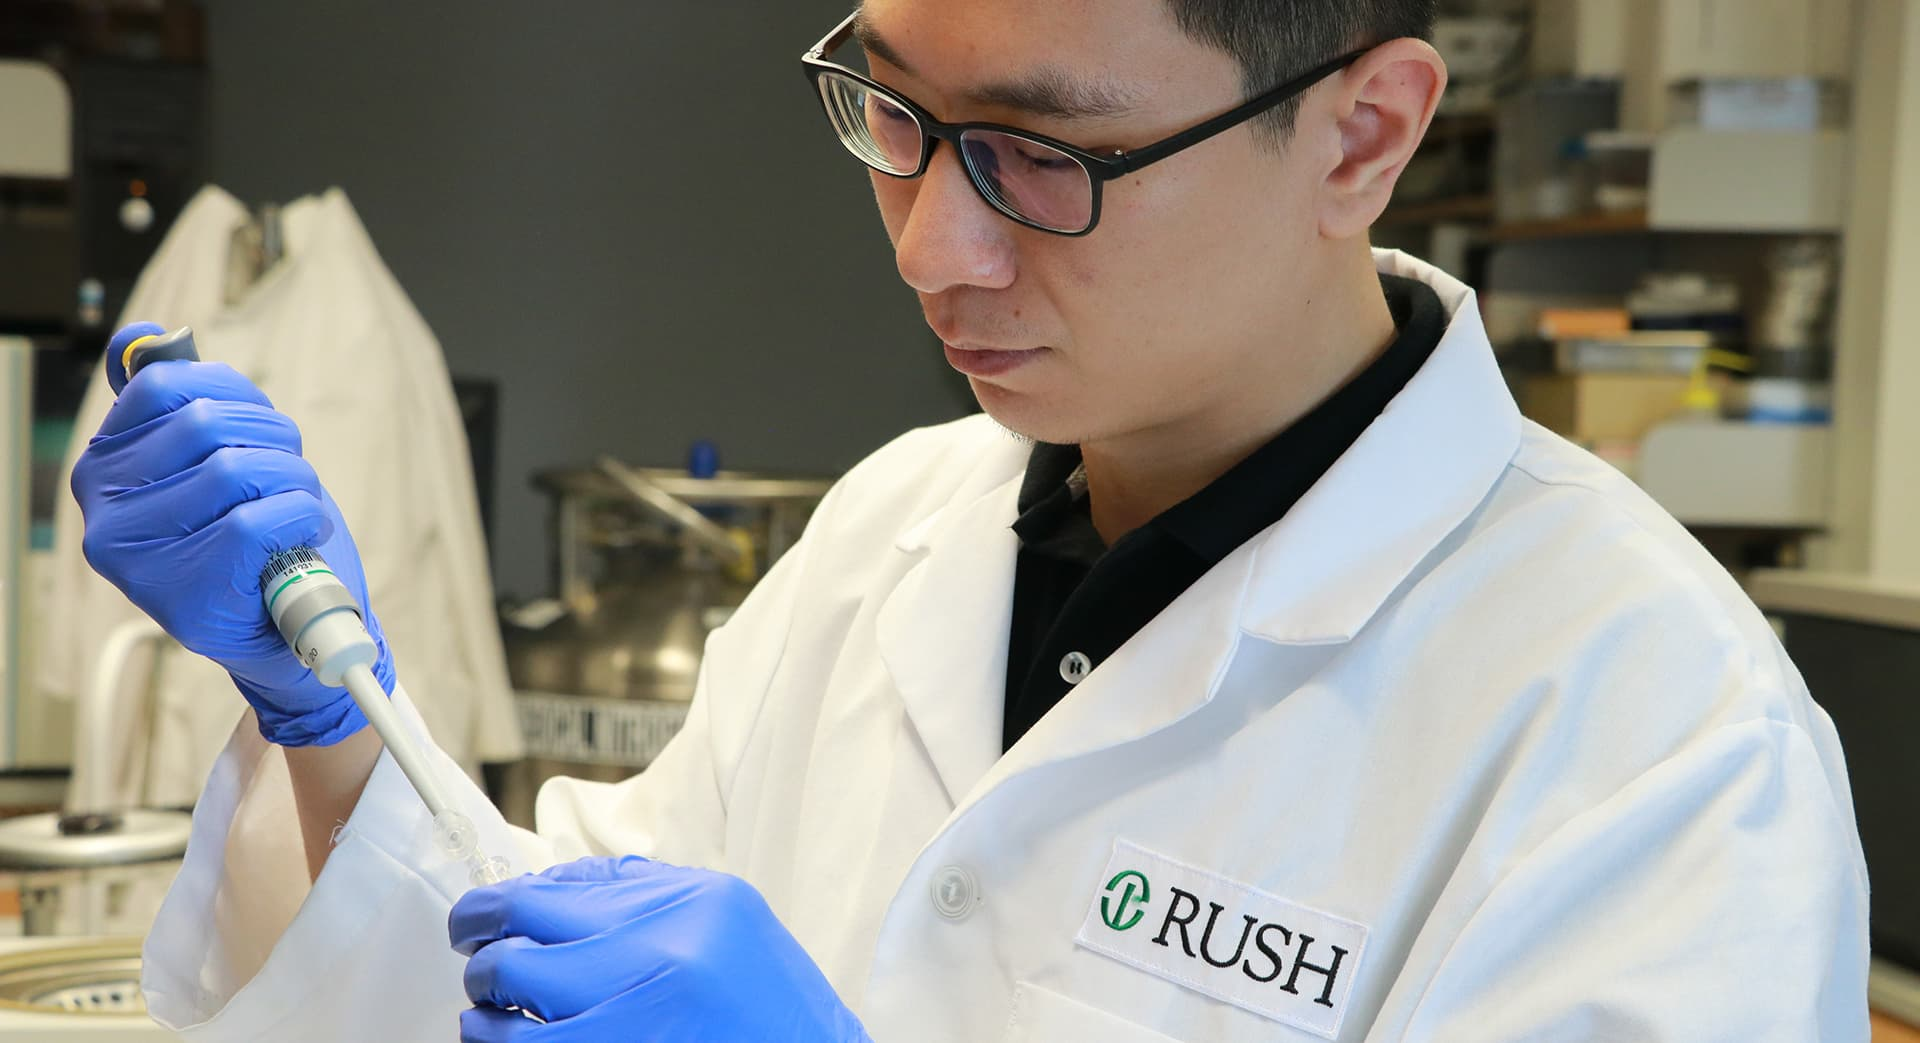 Rush researcher working in a lab